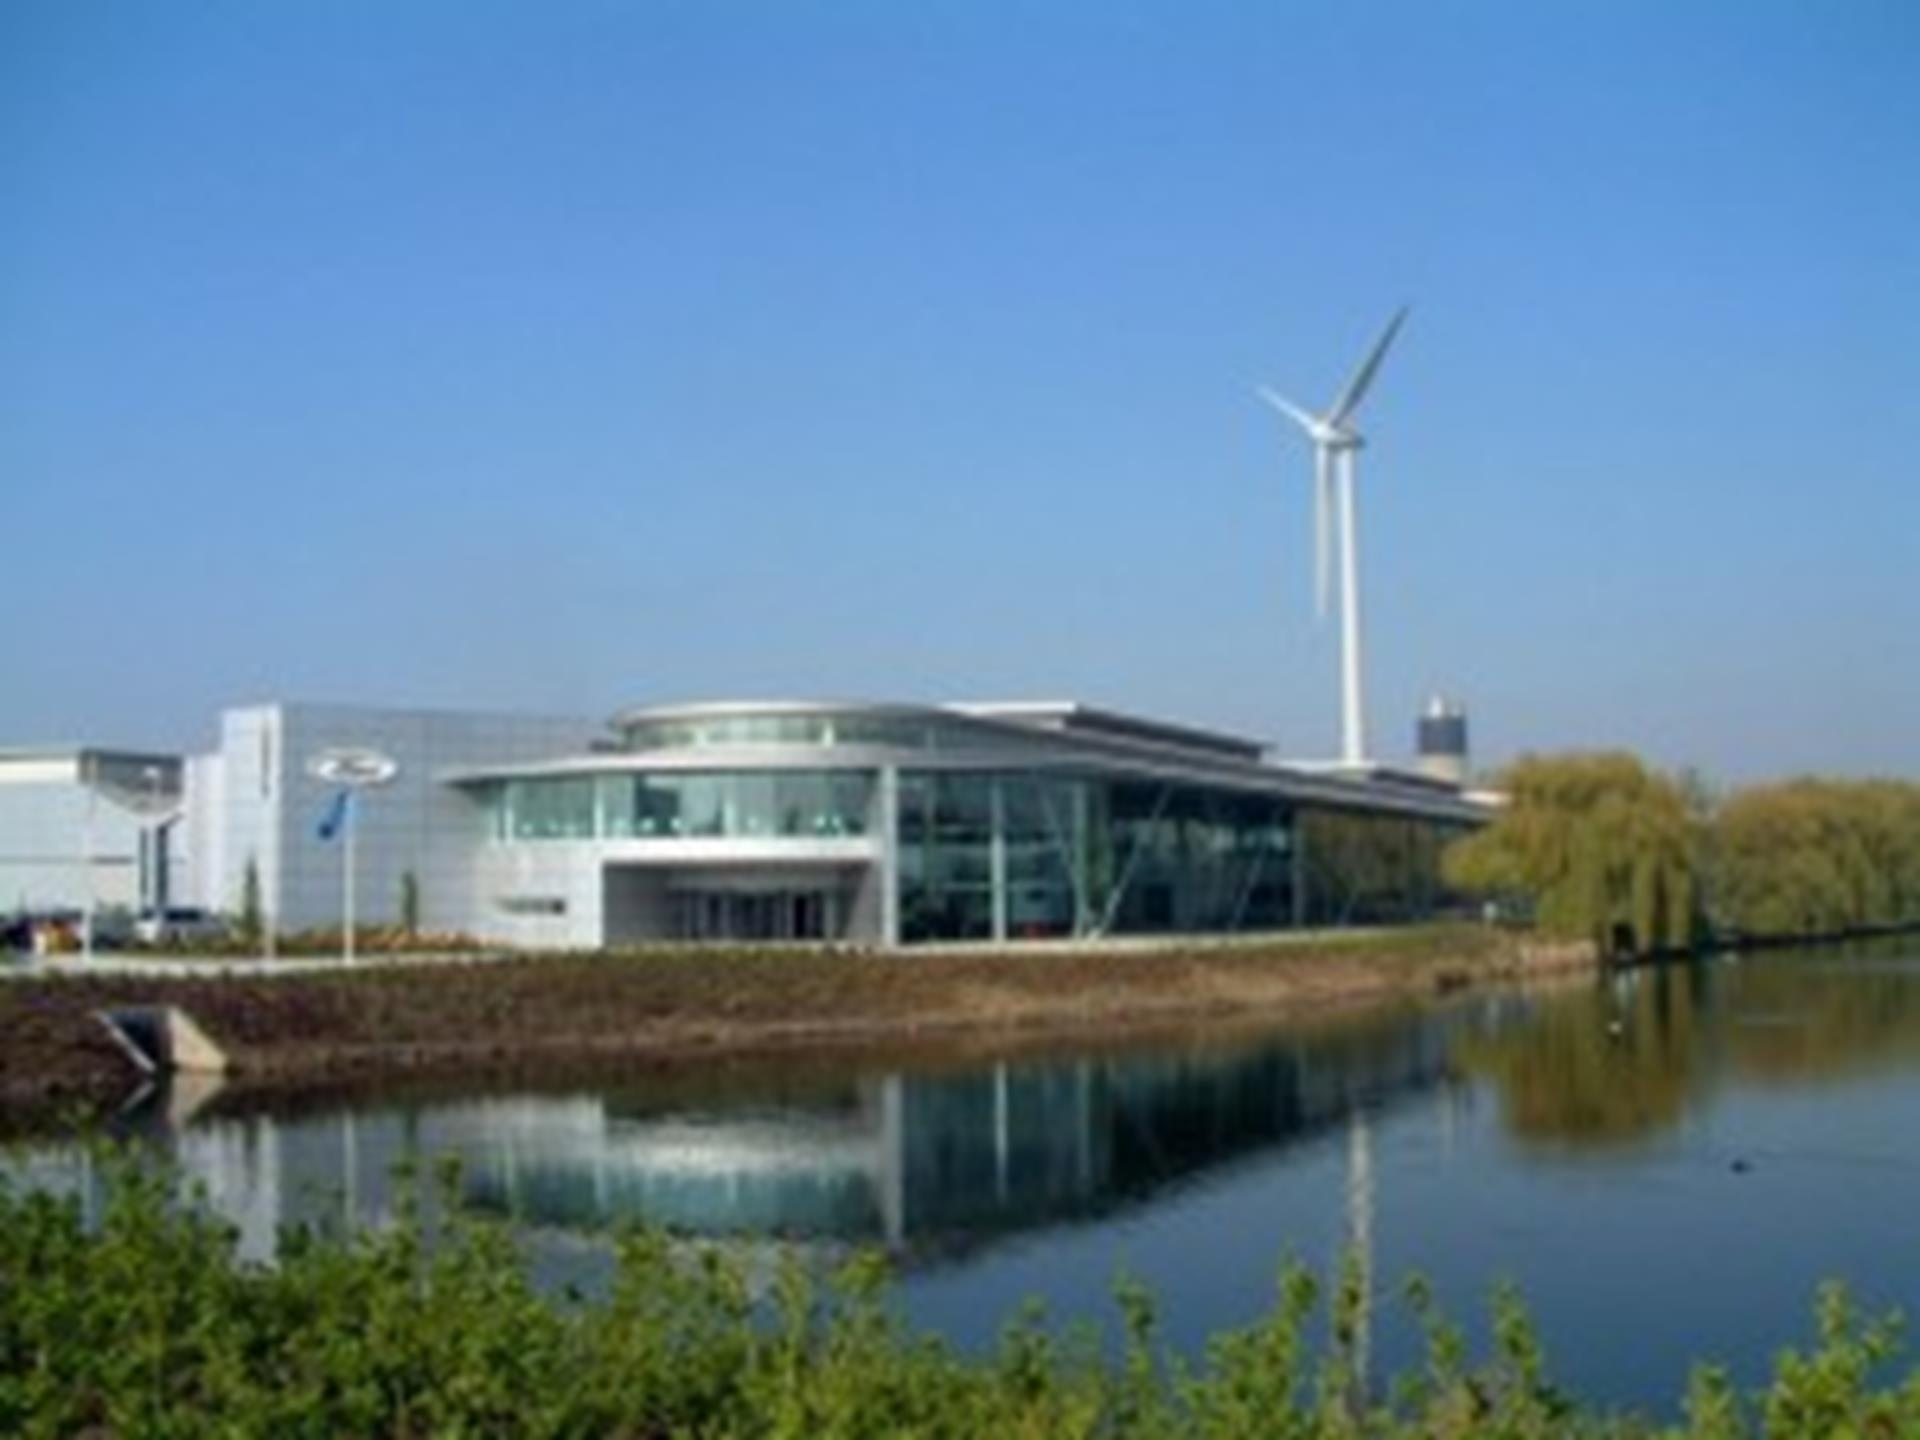 Dagenham Diesel Centre,with wind turbine behind 2004.